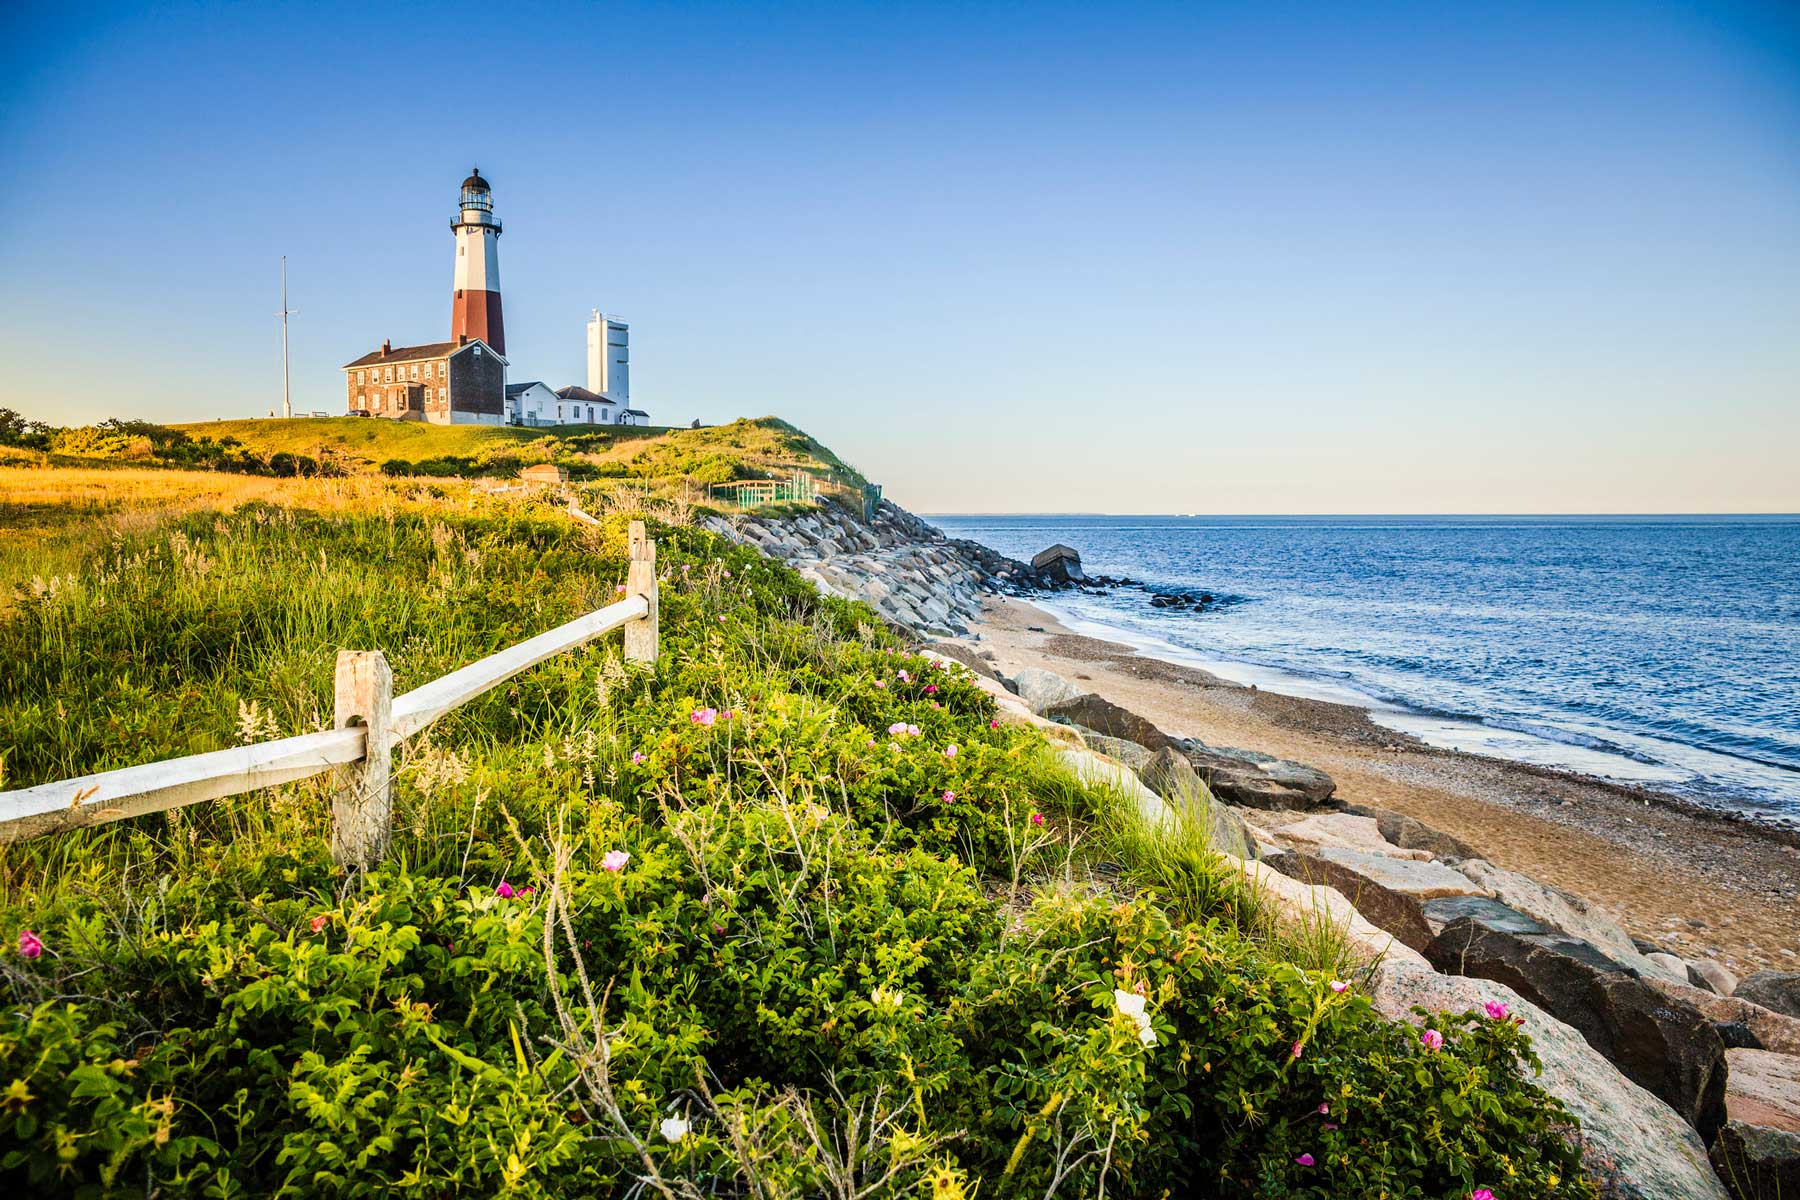 Lighthouse at Montauk point, Long Island